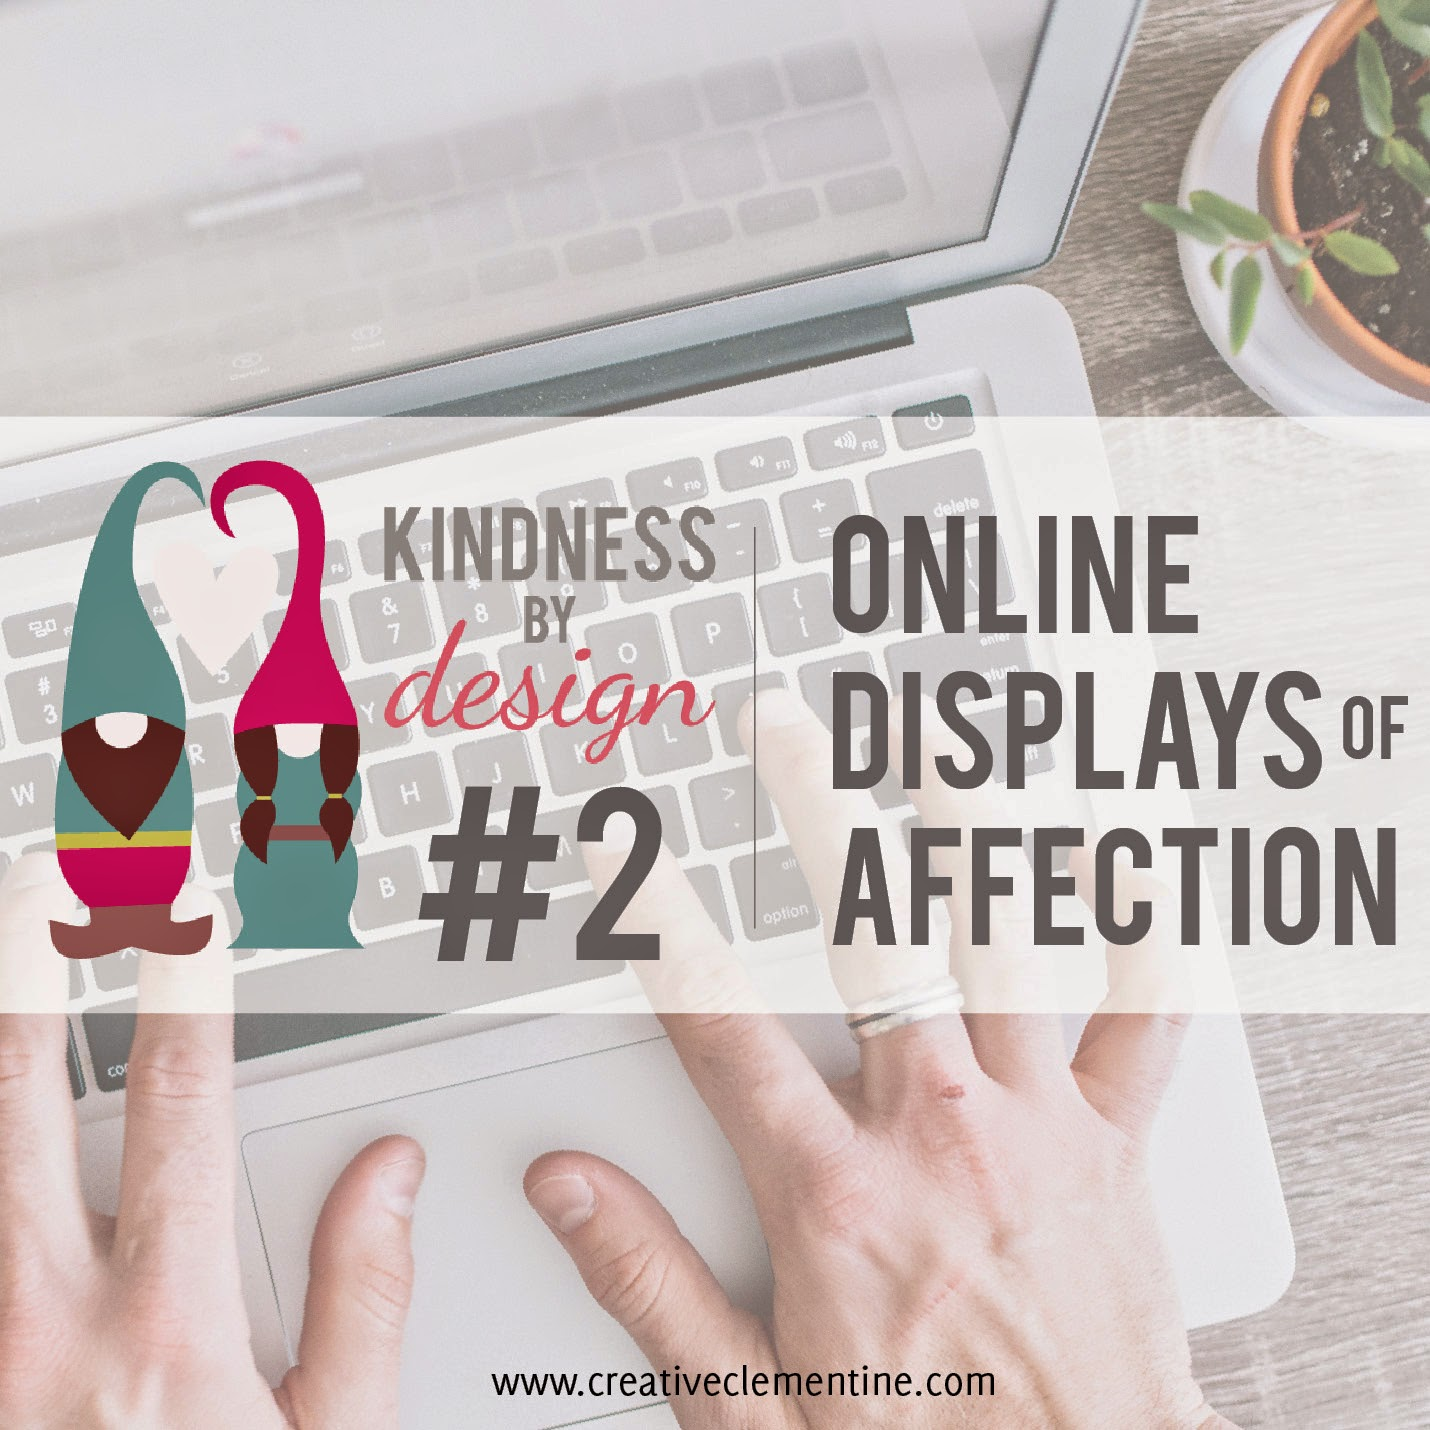 Online Displays of Affection {Kindness by Design: Planning towards a kinder life. Blog series via CreativeClementine.com}